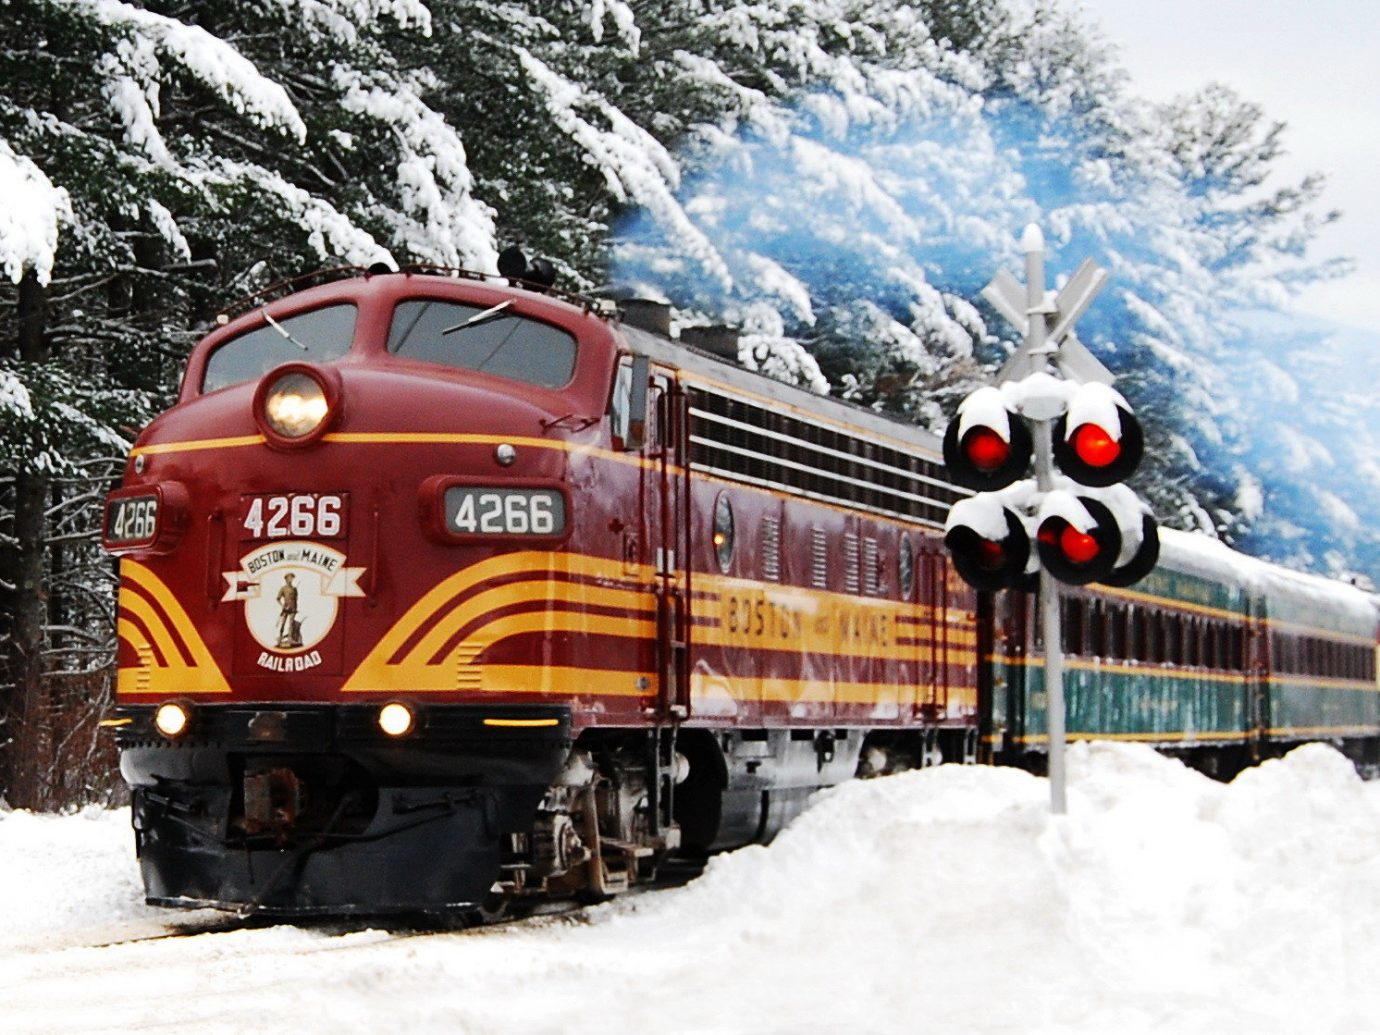 Trip Ideas snow outdoor track transport Winter land vehicle train vehicle weather covered season locomotive rolling stock rail transport traveling day